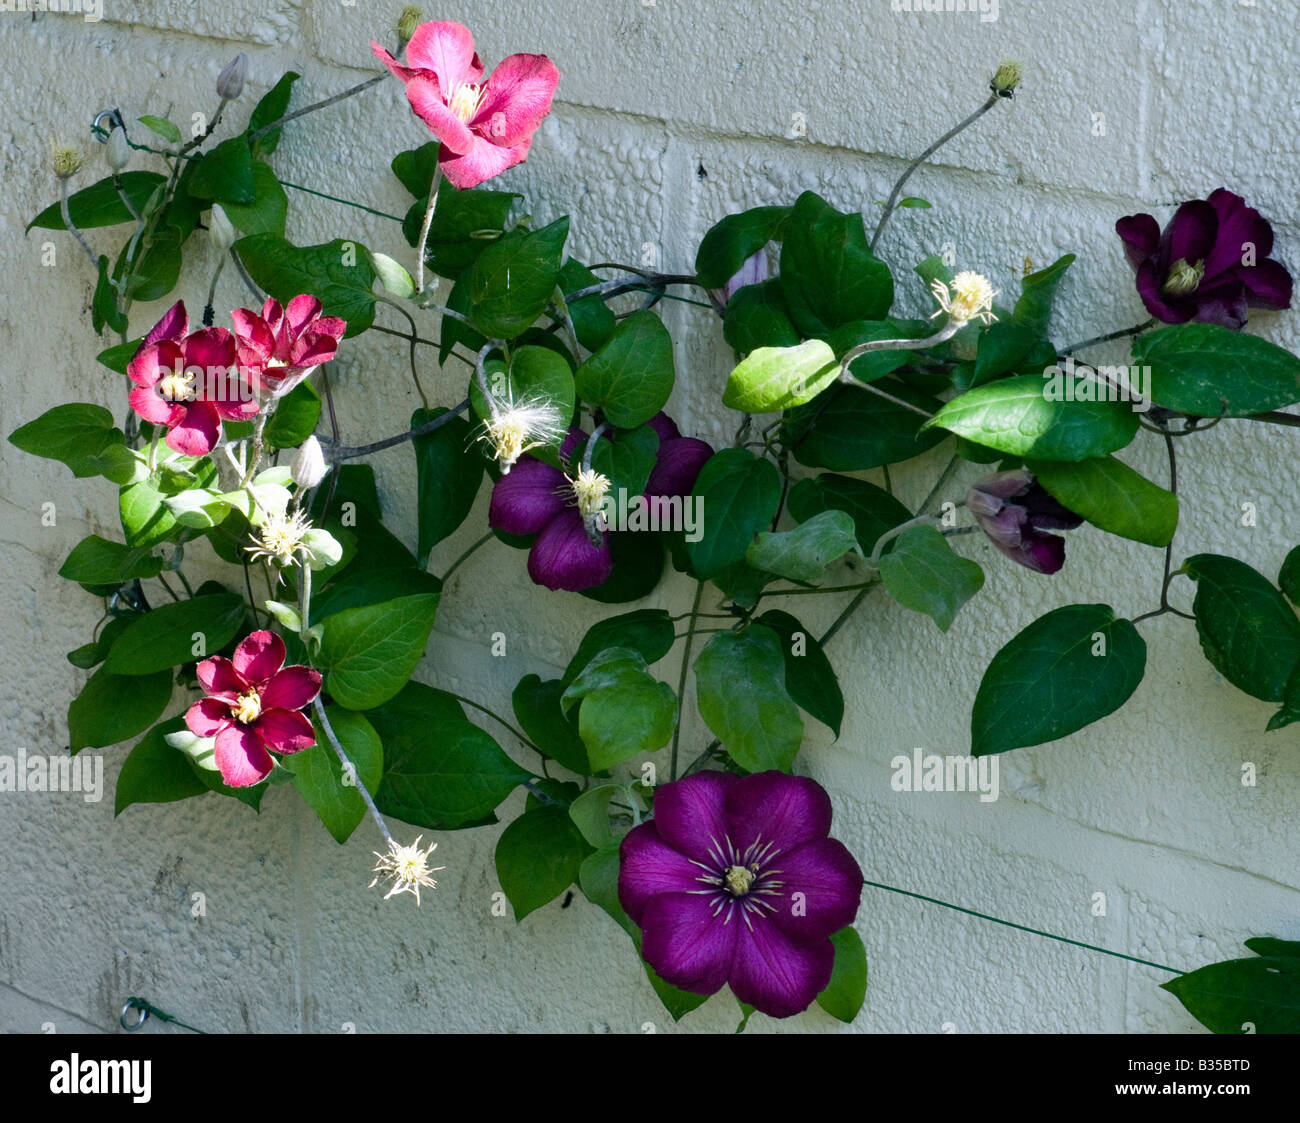 Clematis with purple and pink flowers climbing up a wall - Stock Image